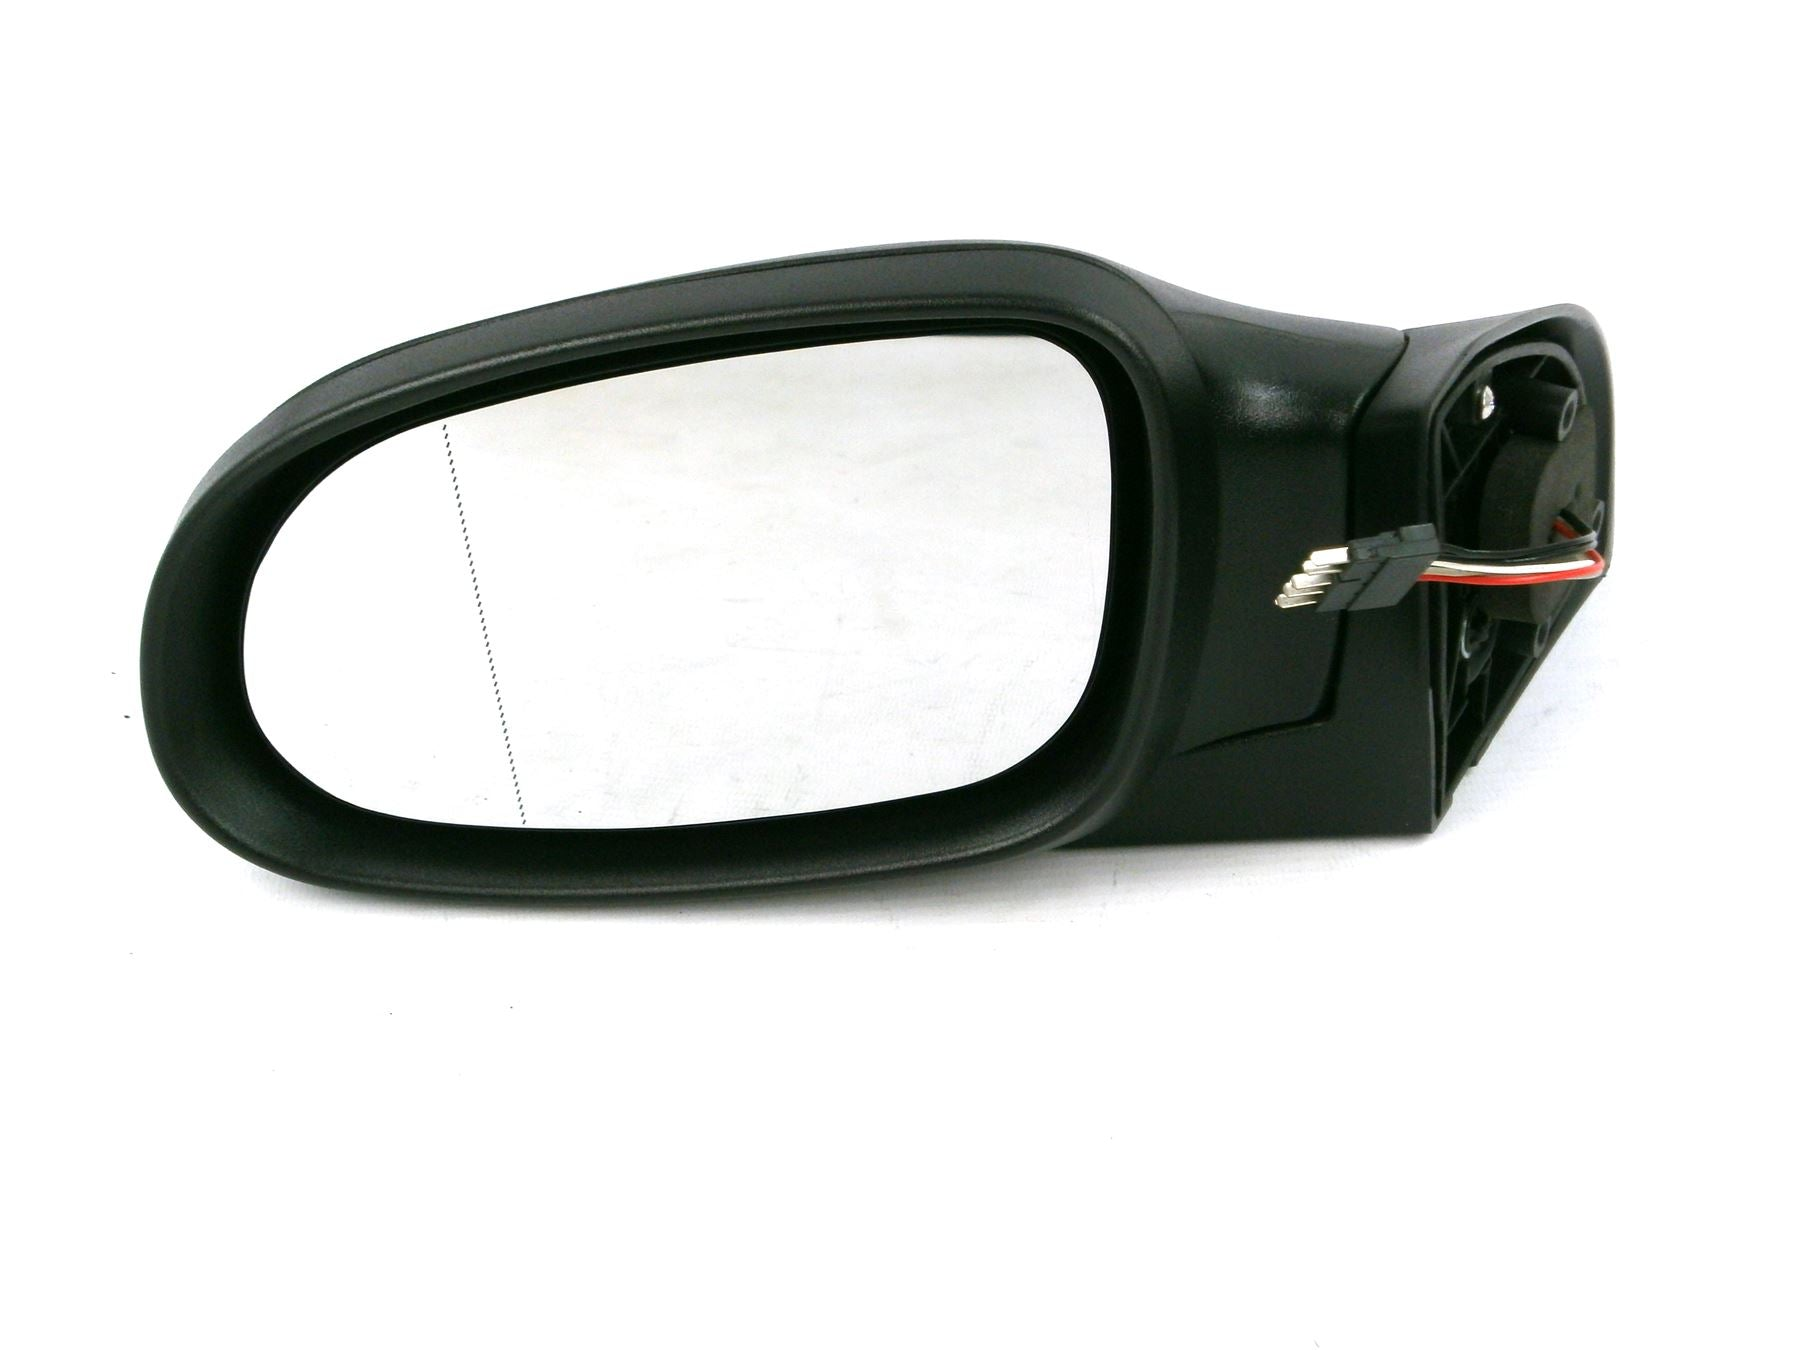 Mercedes A Class 1998-9/2003 Electric Wing Mirror Black 5 Pin Passenger Side N/S